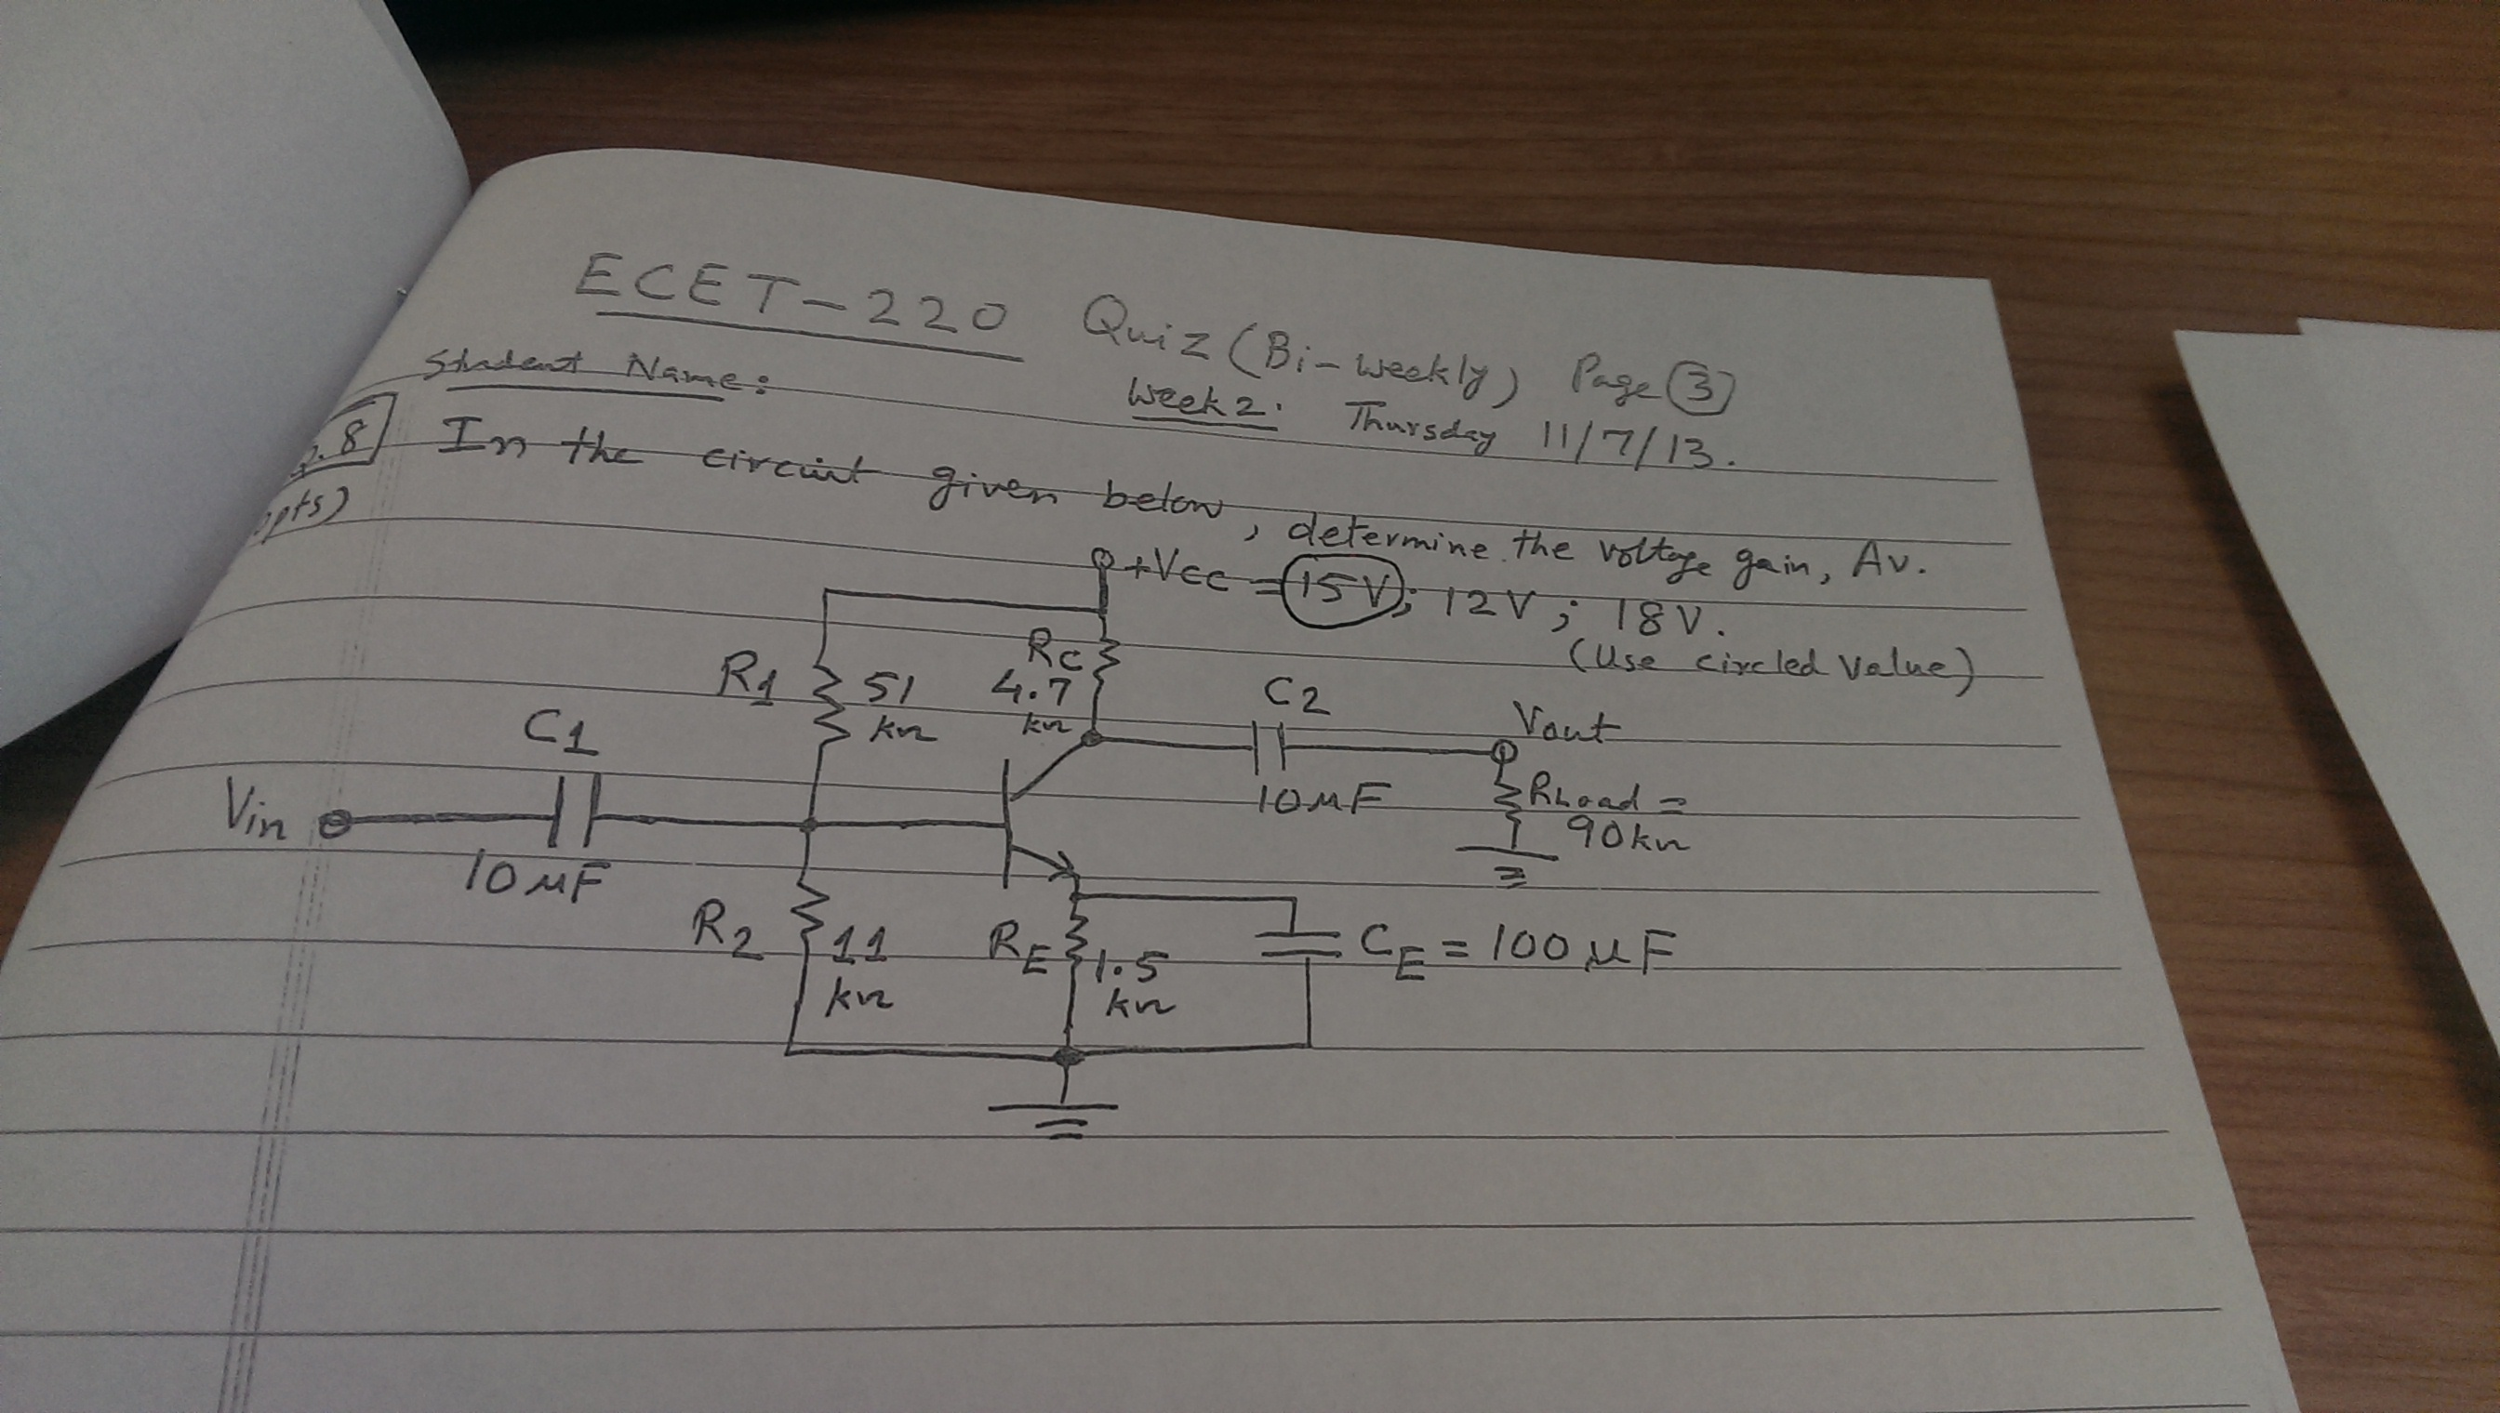 In the circuit given below, determine the voltage